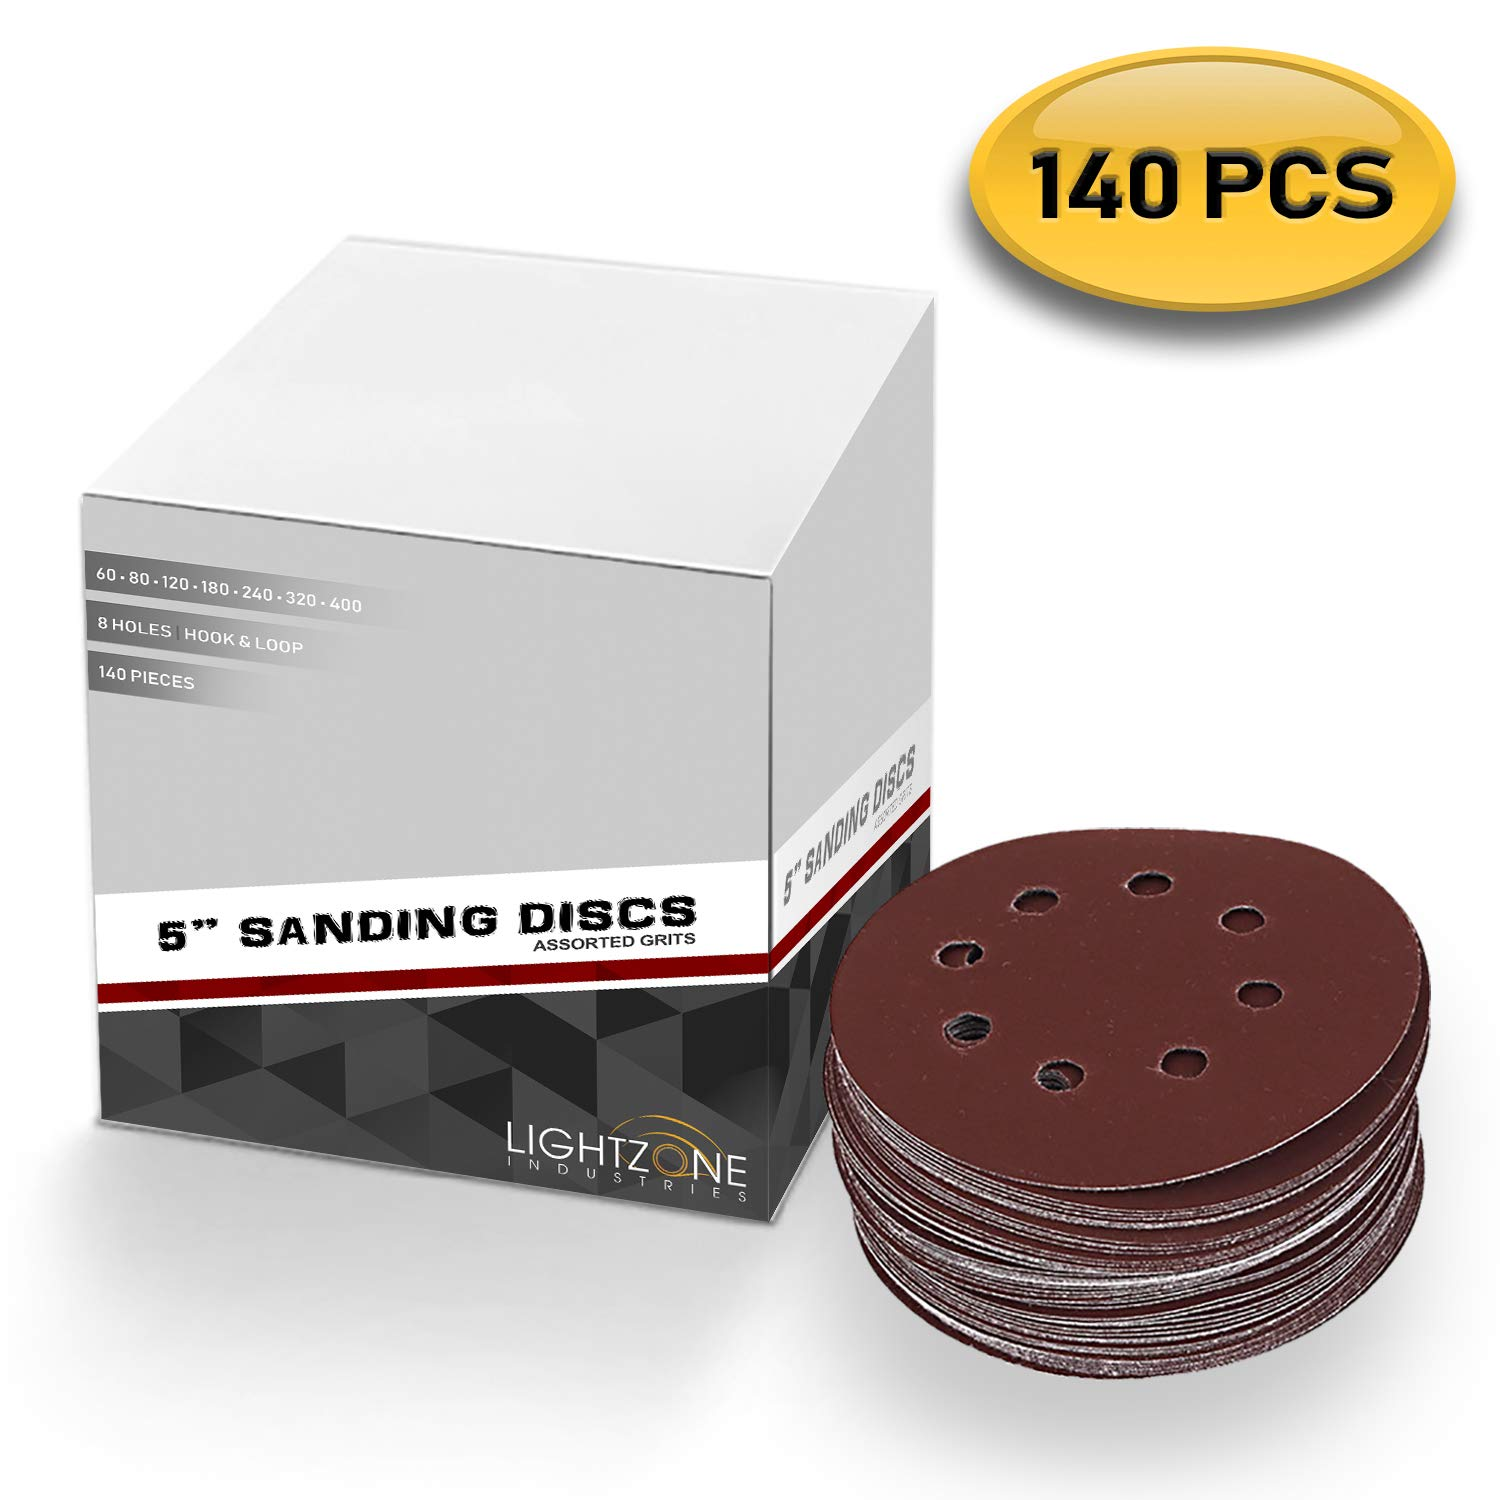 5 inch 8 Hole Sanding Discs Hook and Loop Assorted 140PCS Premium Abrasive Grits 60/80/120/180/240/320/400 for Random Orbital Sander Pad - by LIGHTZONE INDUSTRIES by LIGHTZONE INDUSTRIES